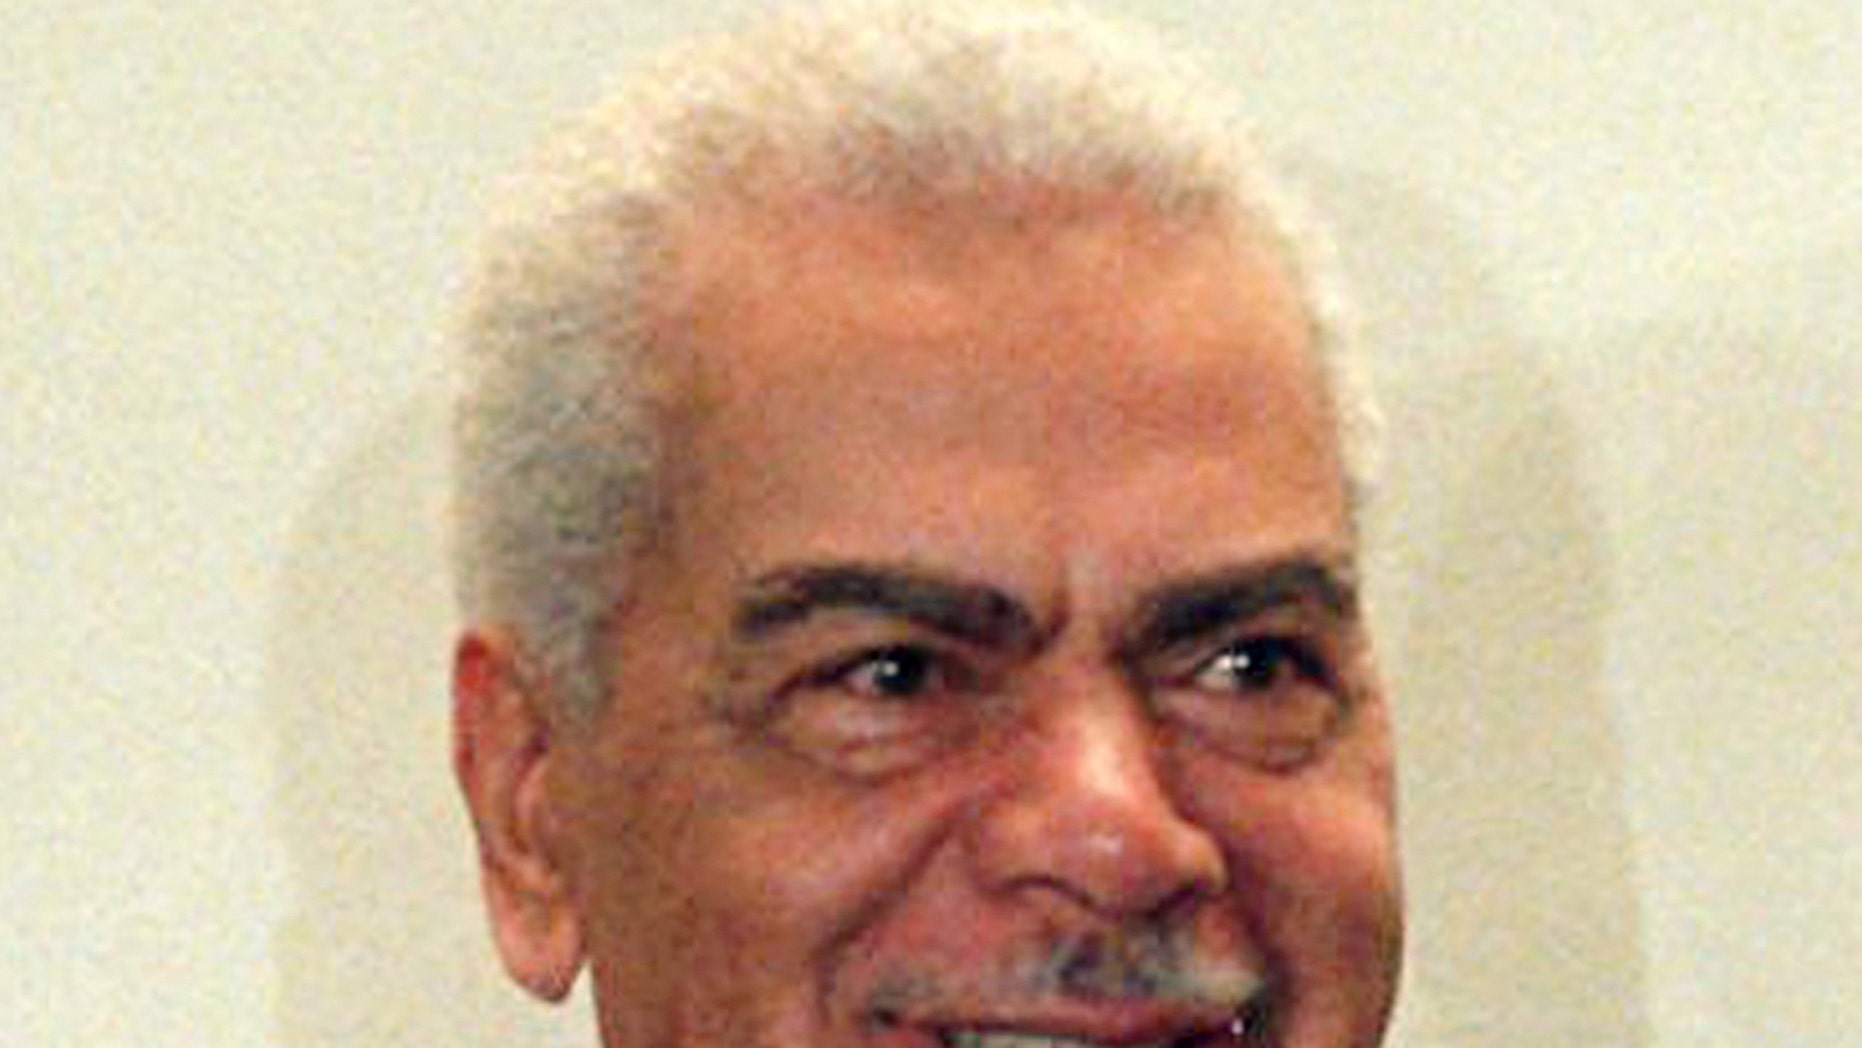 """FILE - In this Feb. 3, 1997, file photo, Earle Hyman poses before an induction to the Theater Hall of Fame at the Gershwin Theatre in New York. Hyman, a veteran actor of stage and screen who was widely known for playing Russell Huxtable on """"The Cosby Show,"""" has died. Strohl, a representative for The Actors Fund, says that Hyman died Friday, Nov. 17, 2017, at the Lillian Booth Actors Home in Englewood, New Jersey. He was 91. (AP Photo/Ron Frehm, File)"""